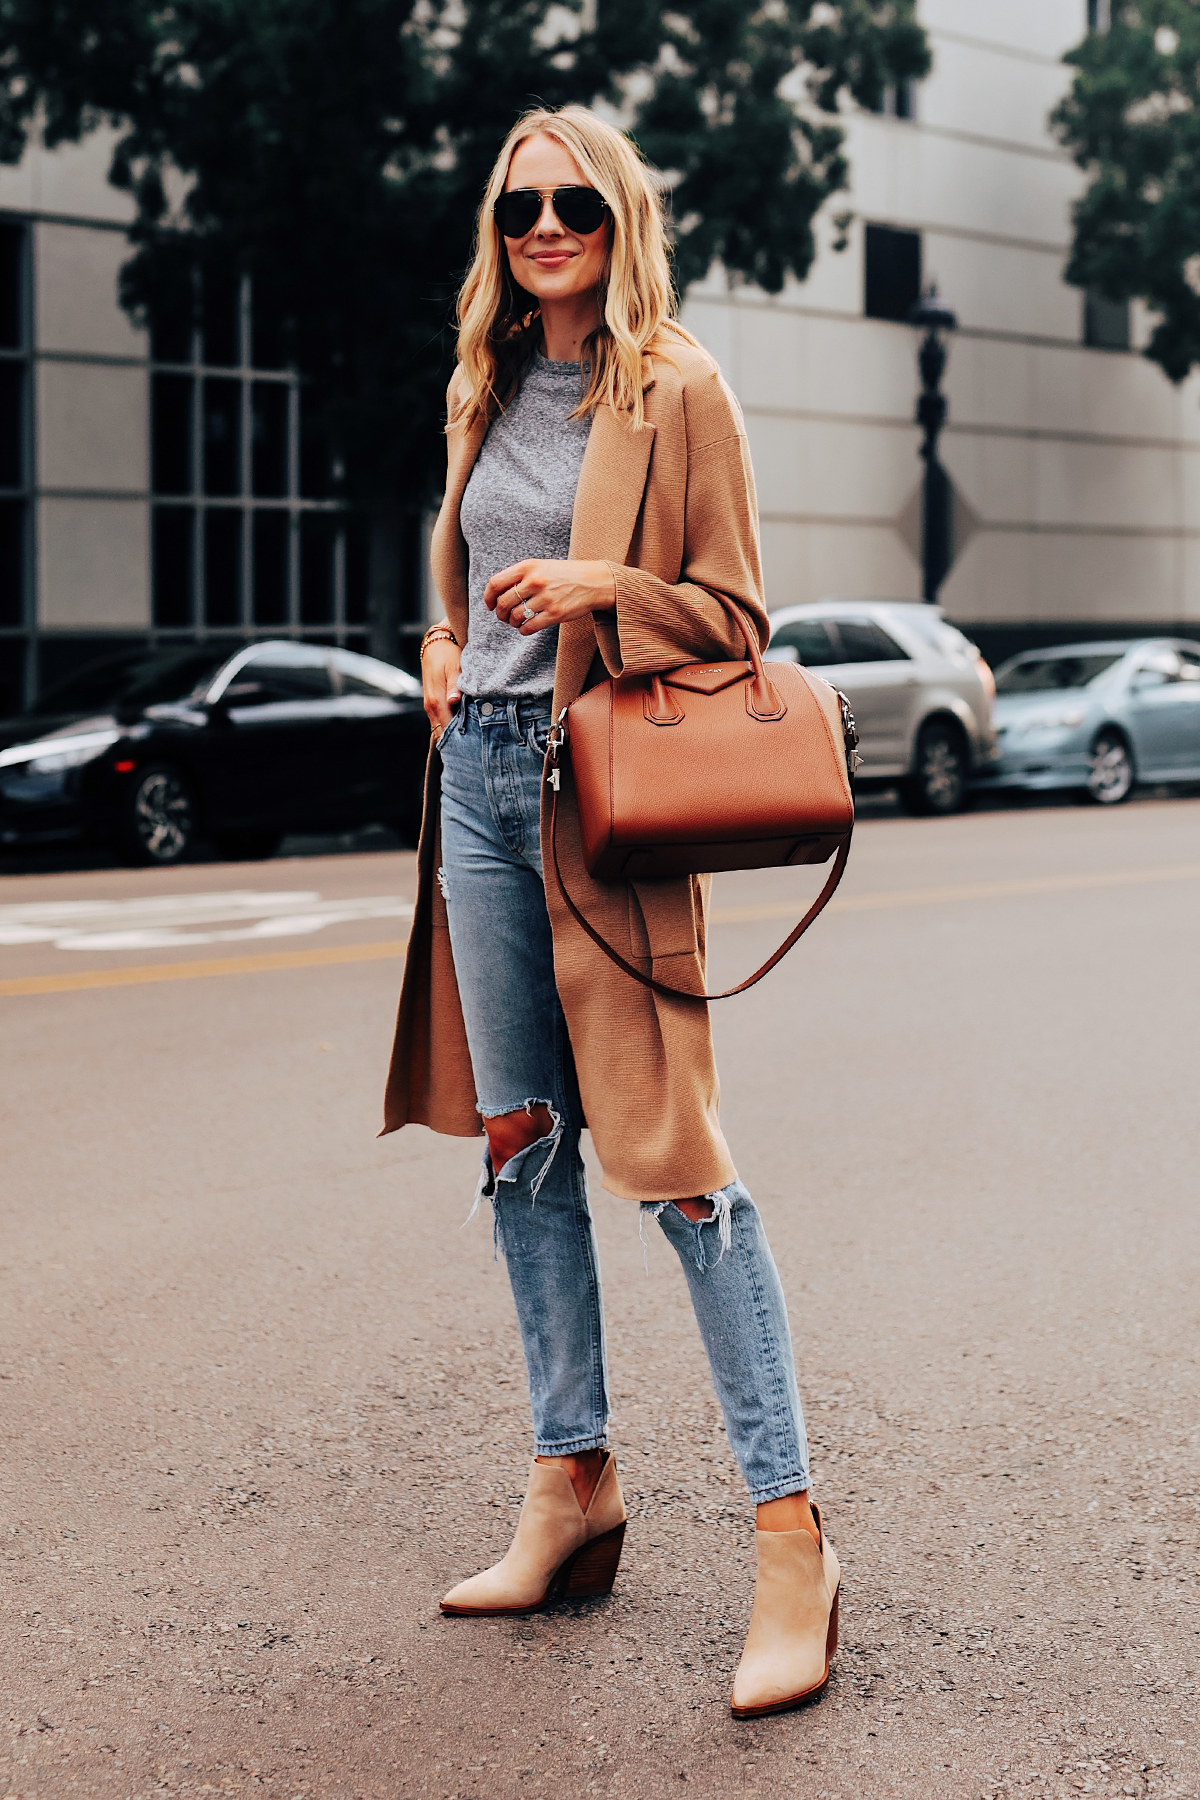 Fashion Jackson Wearing Jcrew Camel Coatigan Grey Tshirt Ripped Jeans Tan Suede Booties Givenchy Antigona Cognac Handbag